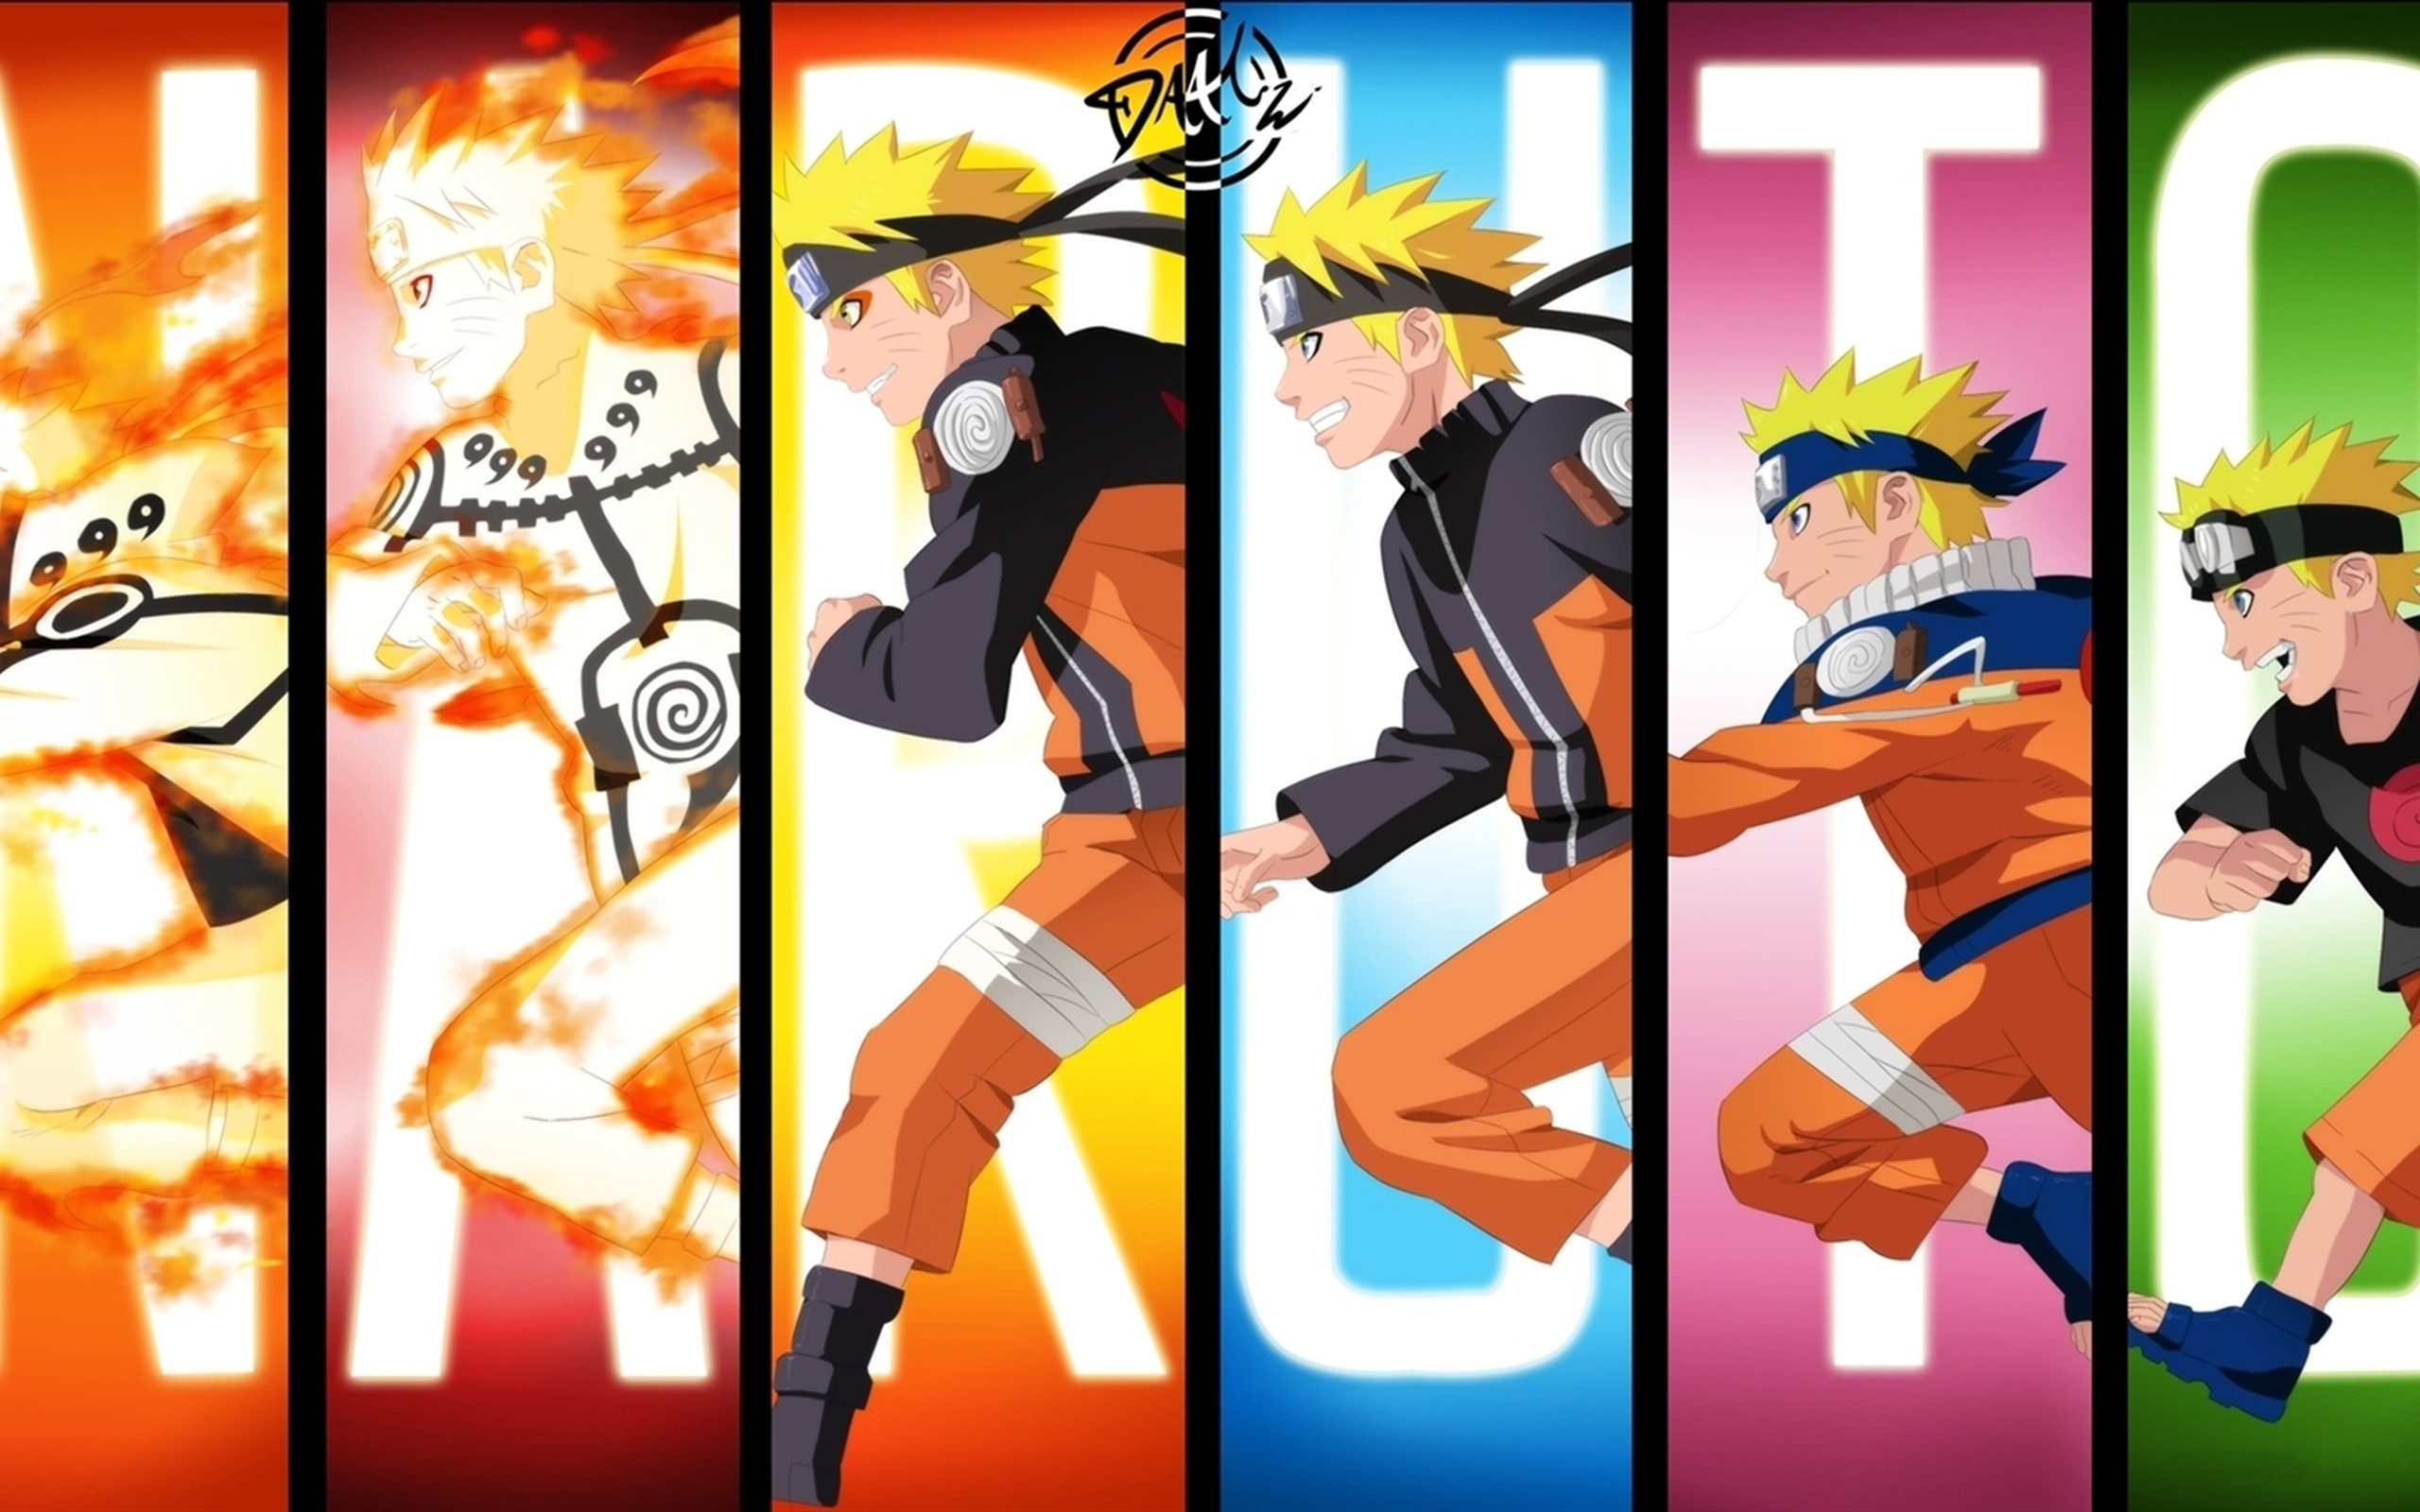 2560x1600 Free Naruto Shippuden Awesome Phone Image Download.